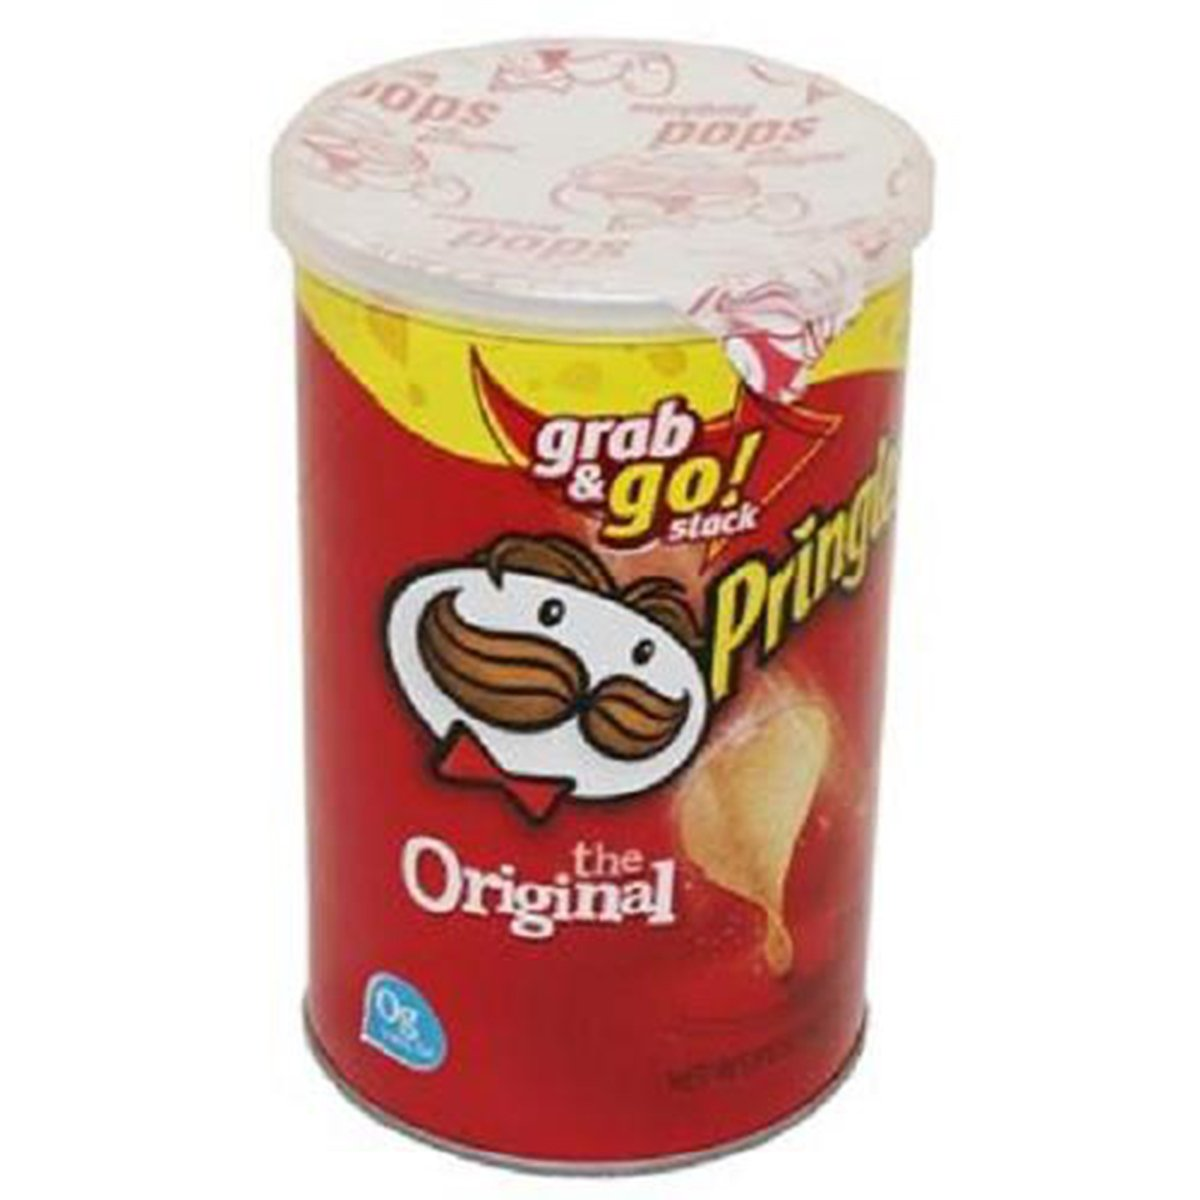 Product Of Pringles, Grab & Go - Original Medium, Count 1 - Chips / Grab Varieties & Flavors